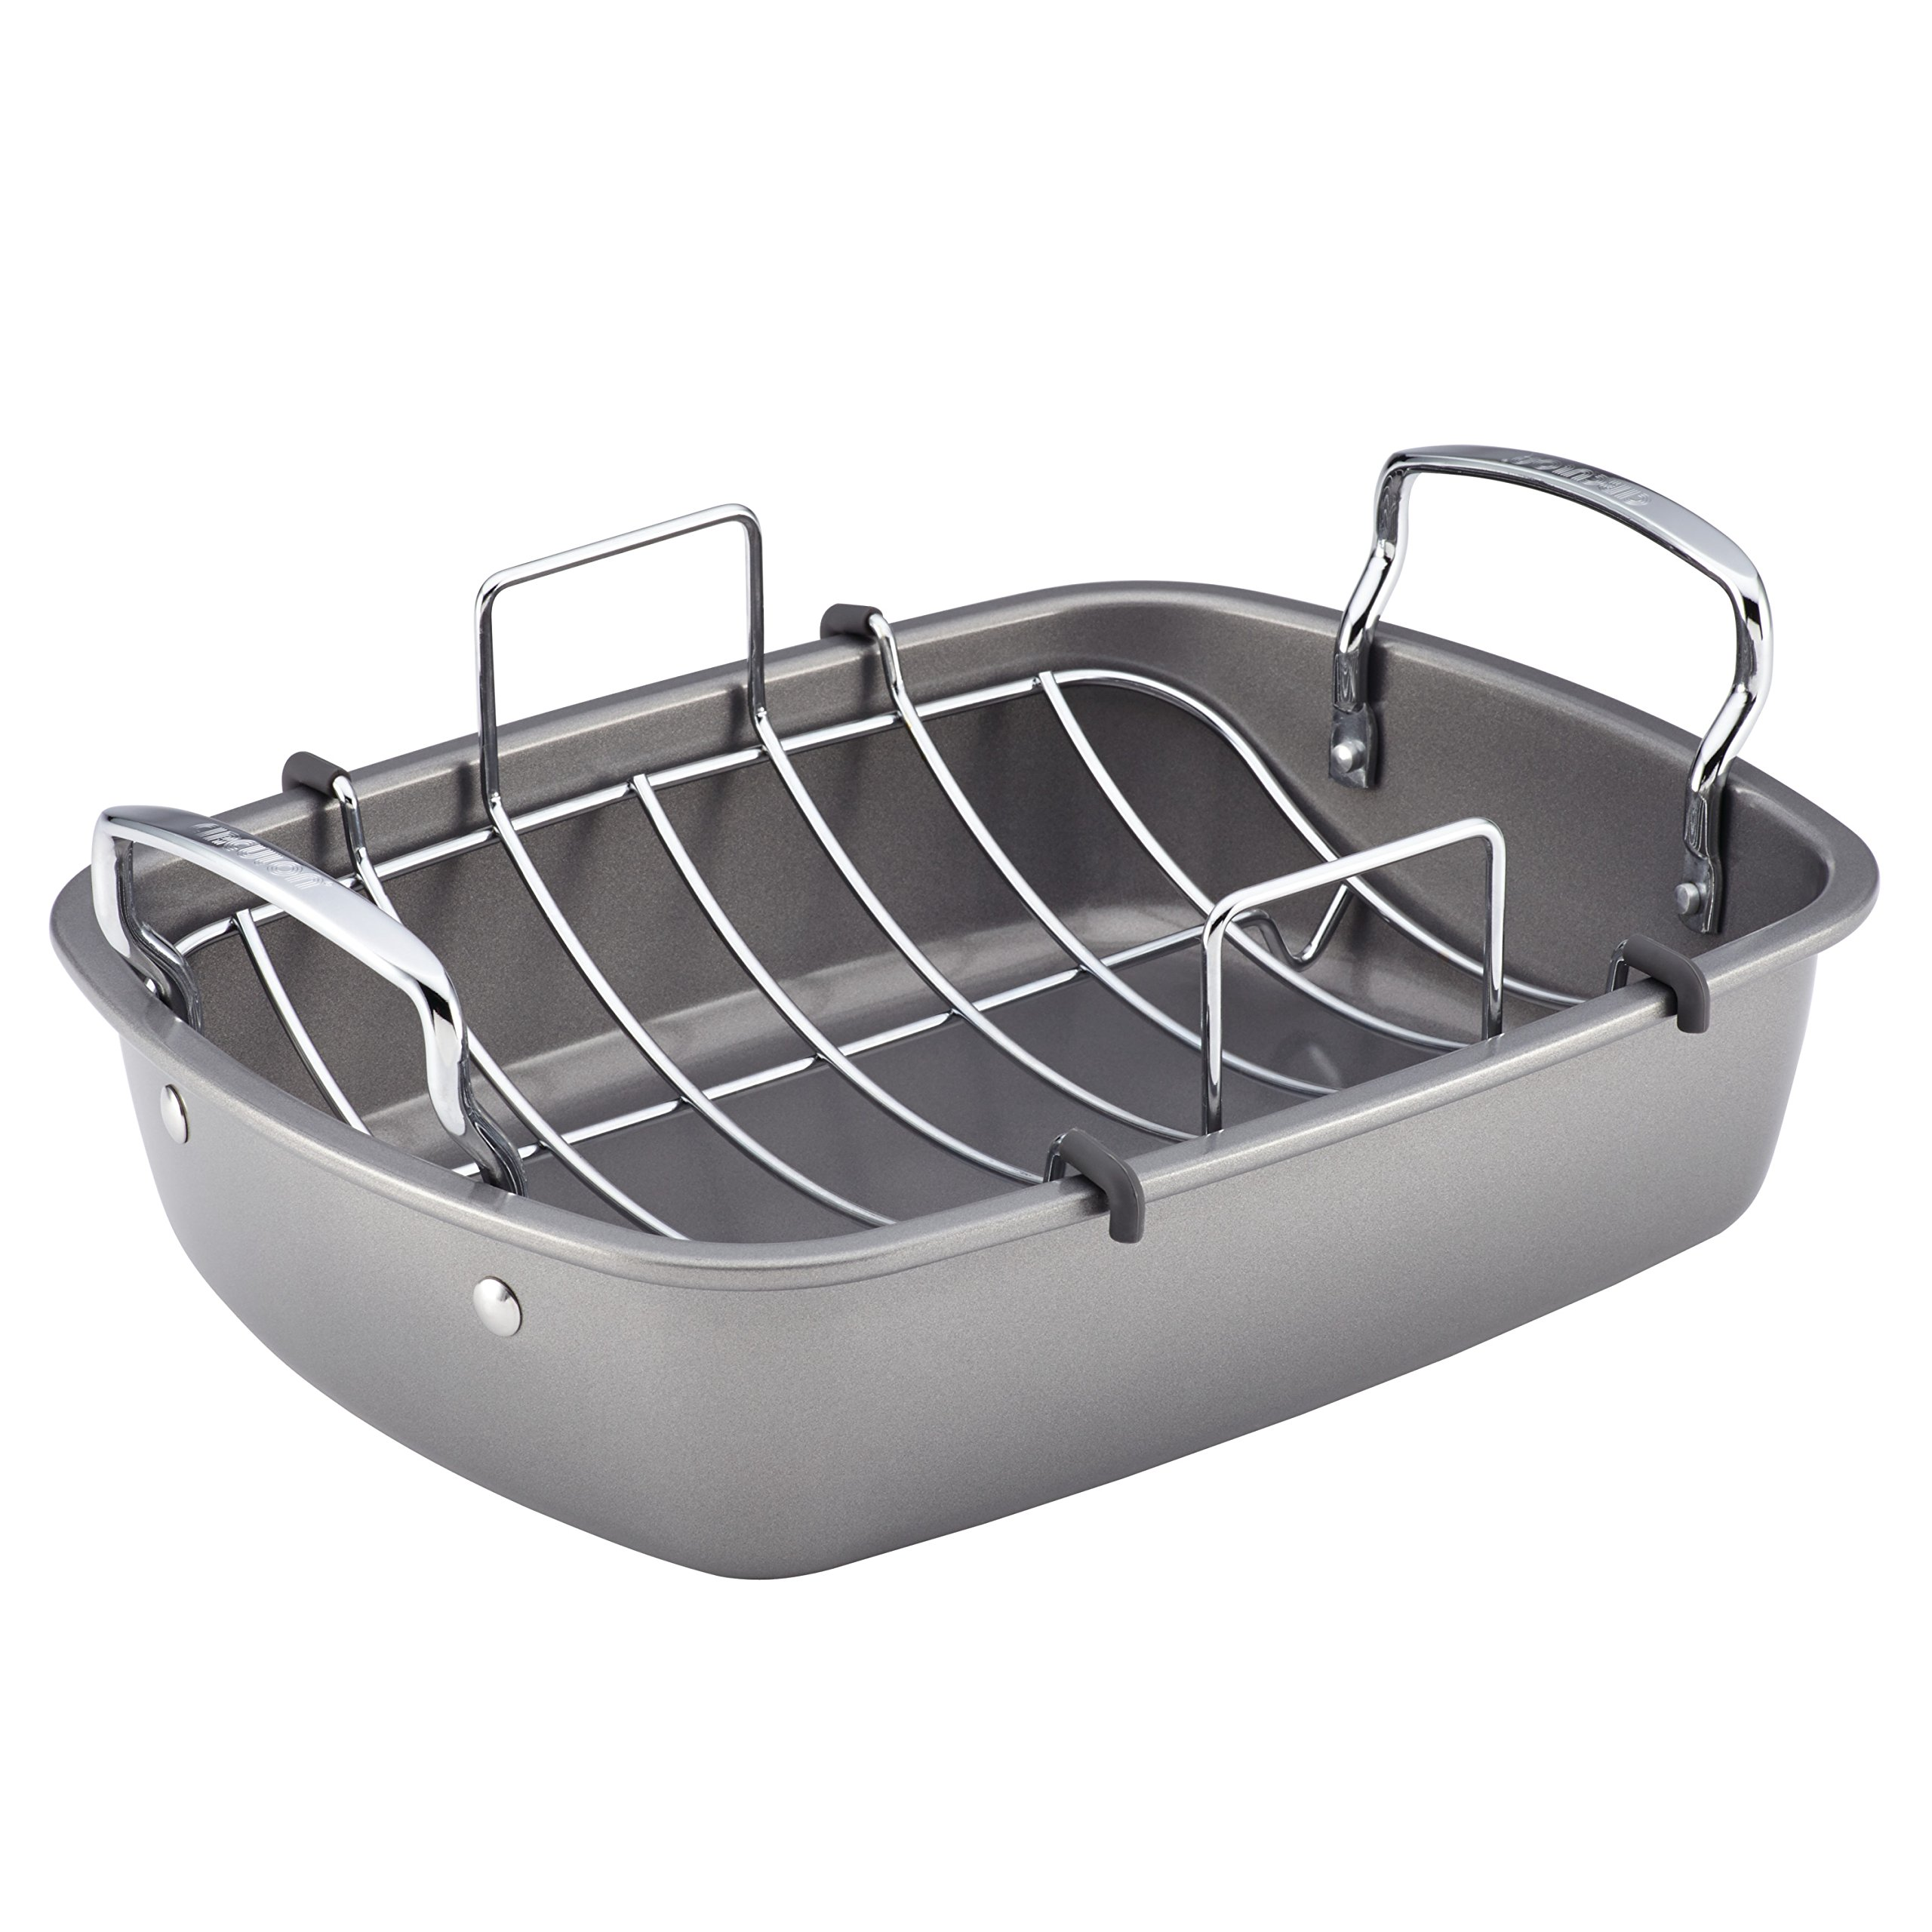 Circulon 56539 Nonstick Bakeware Roaster with U-Rack, 17''x13'', Silver by Circulon